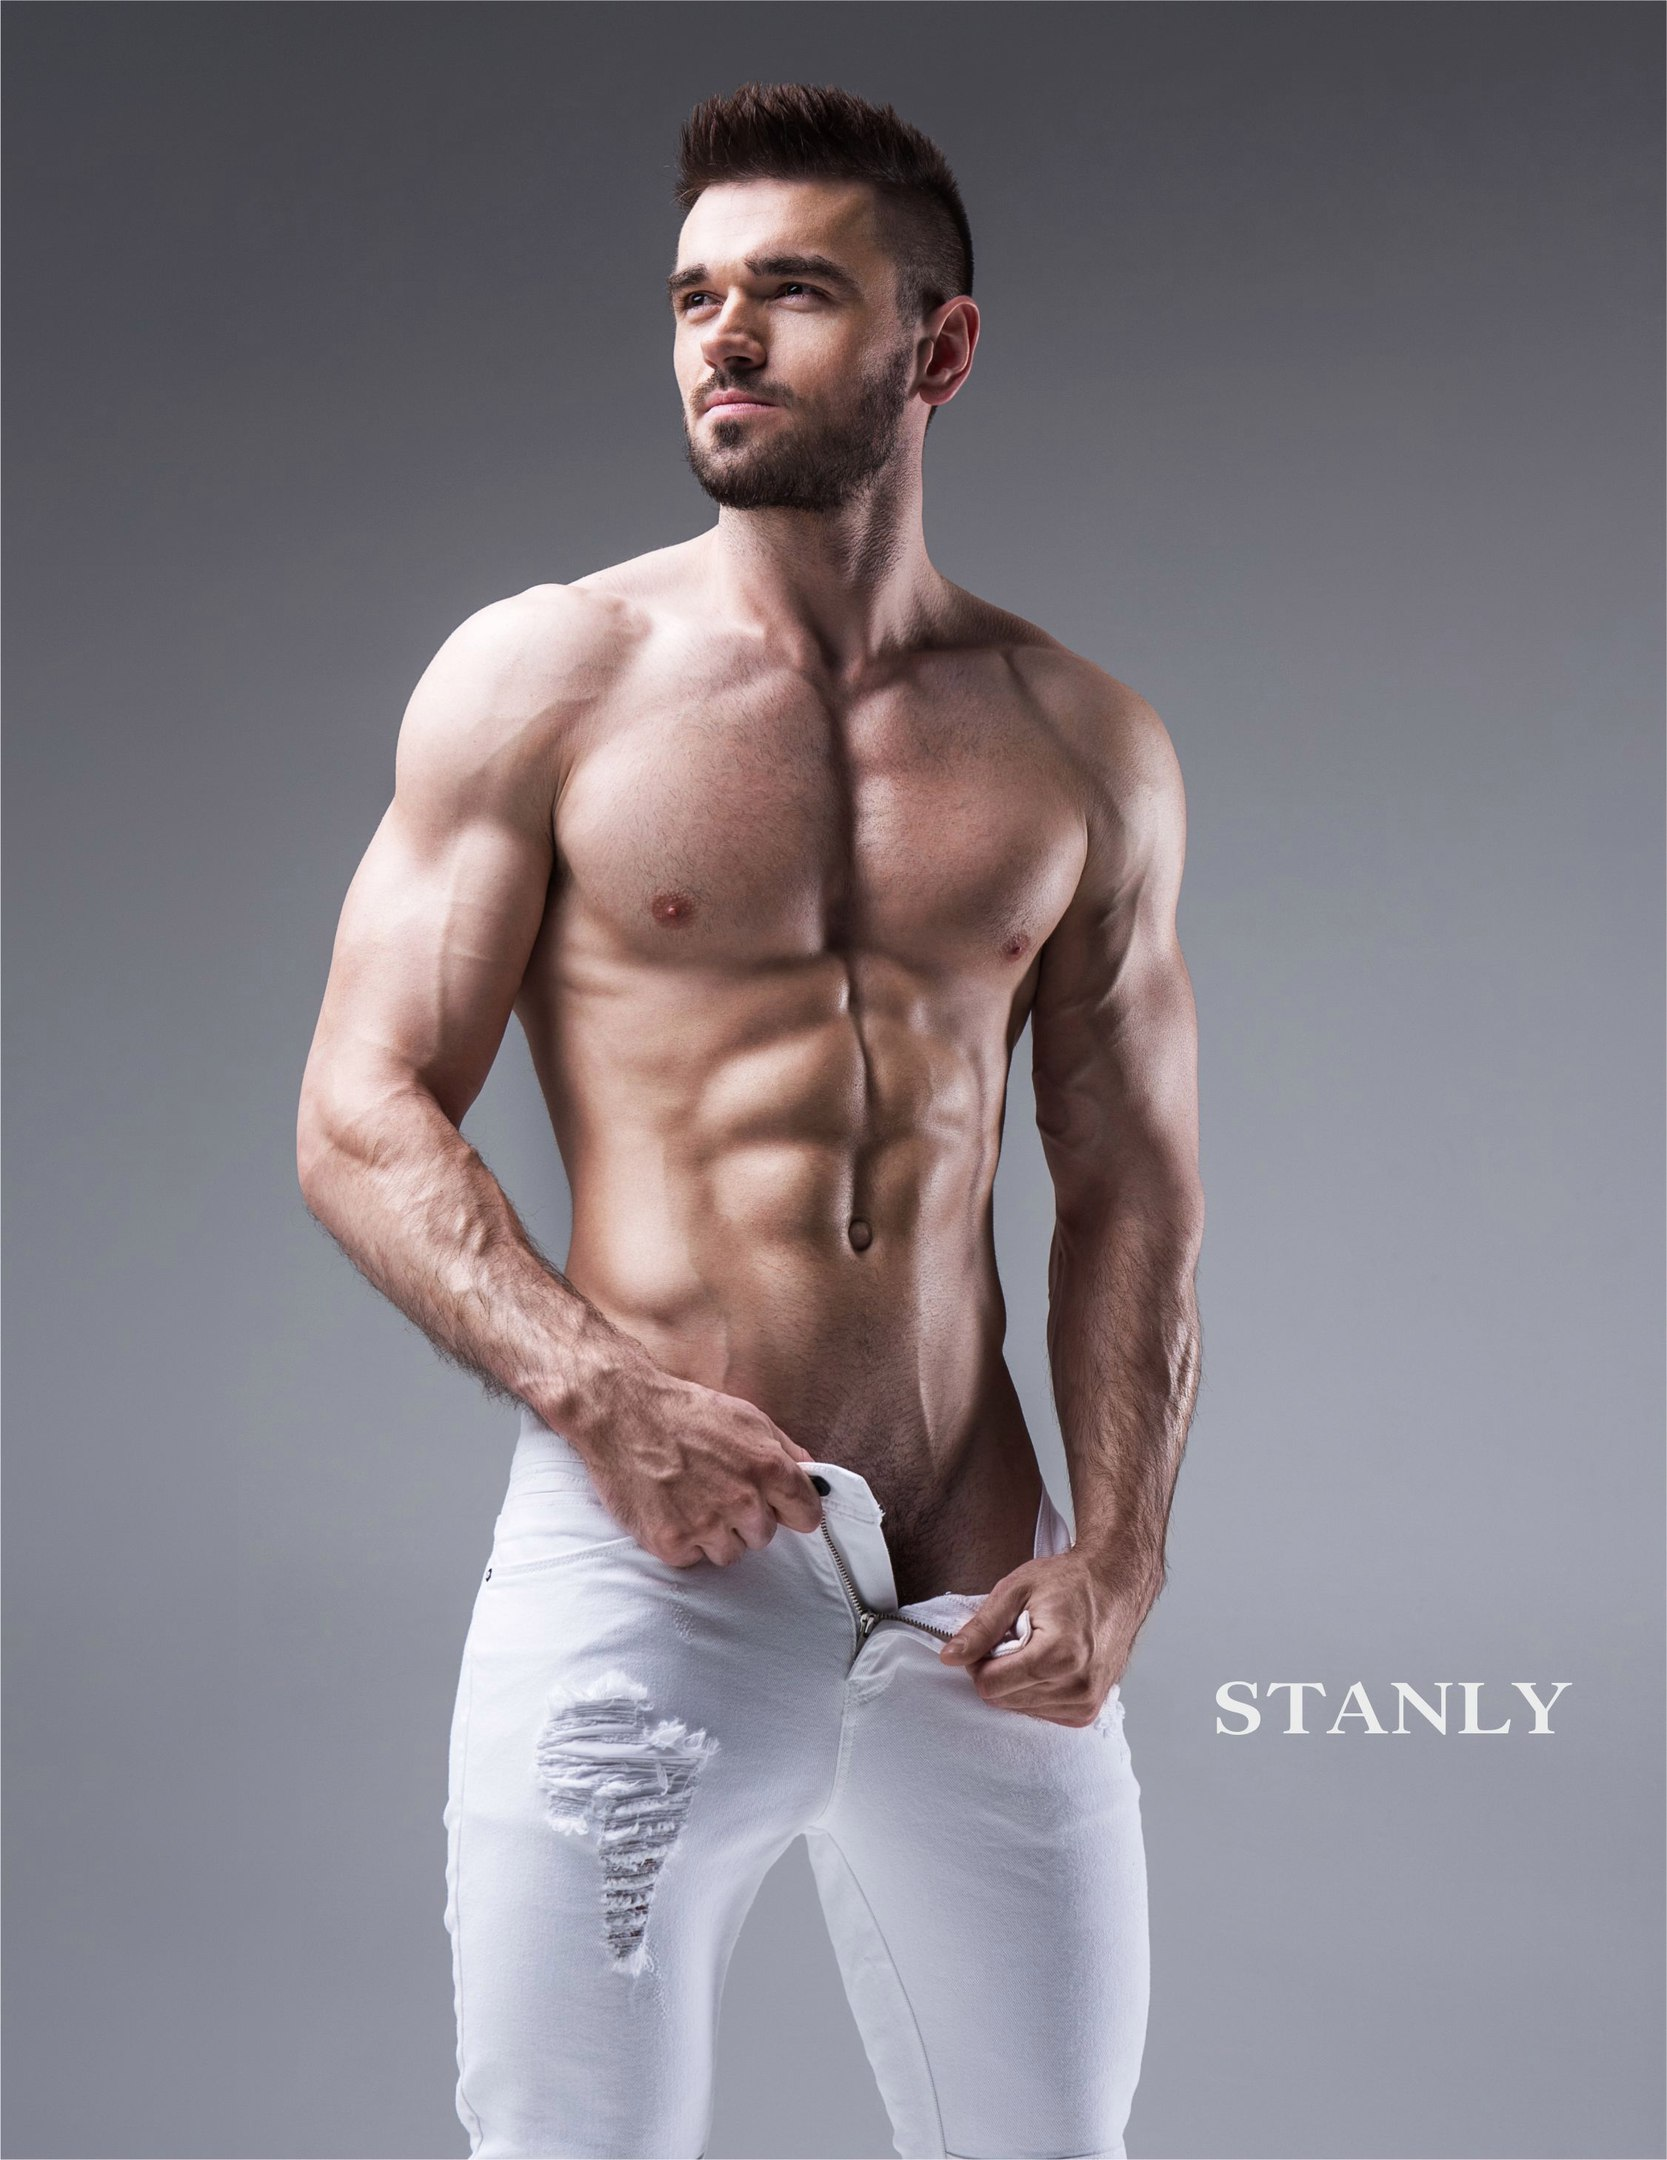 Ivan by Stanly